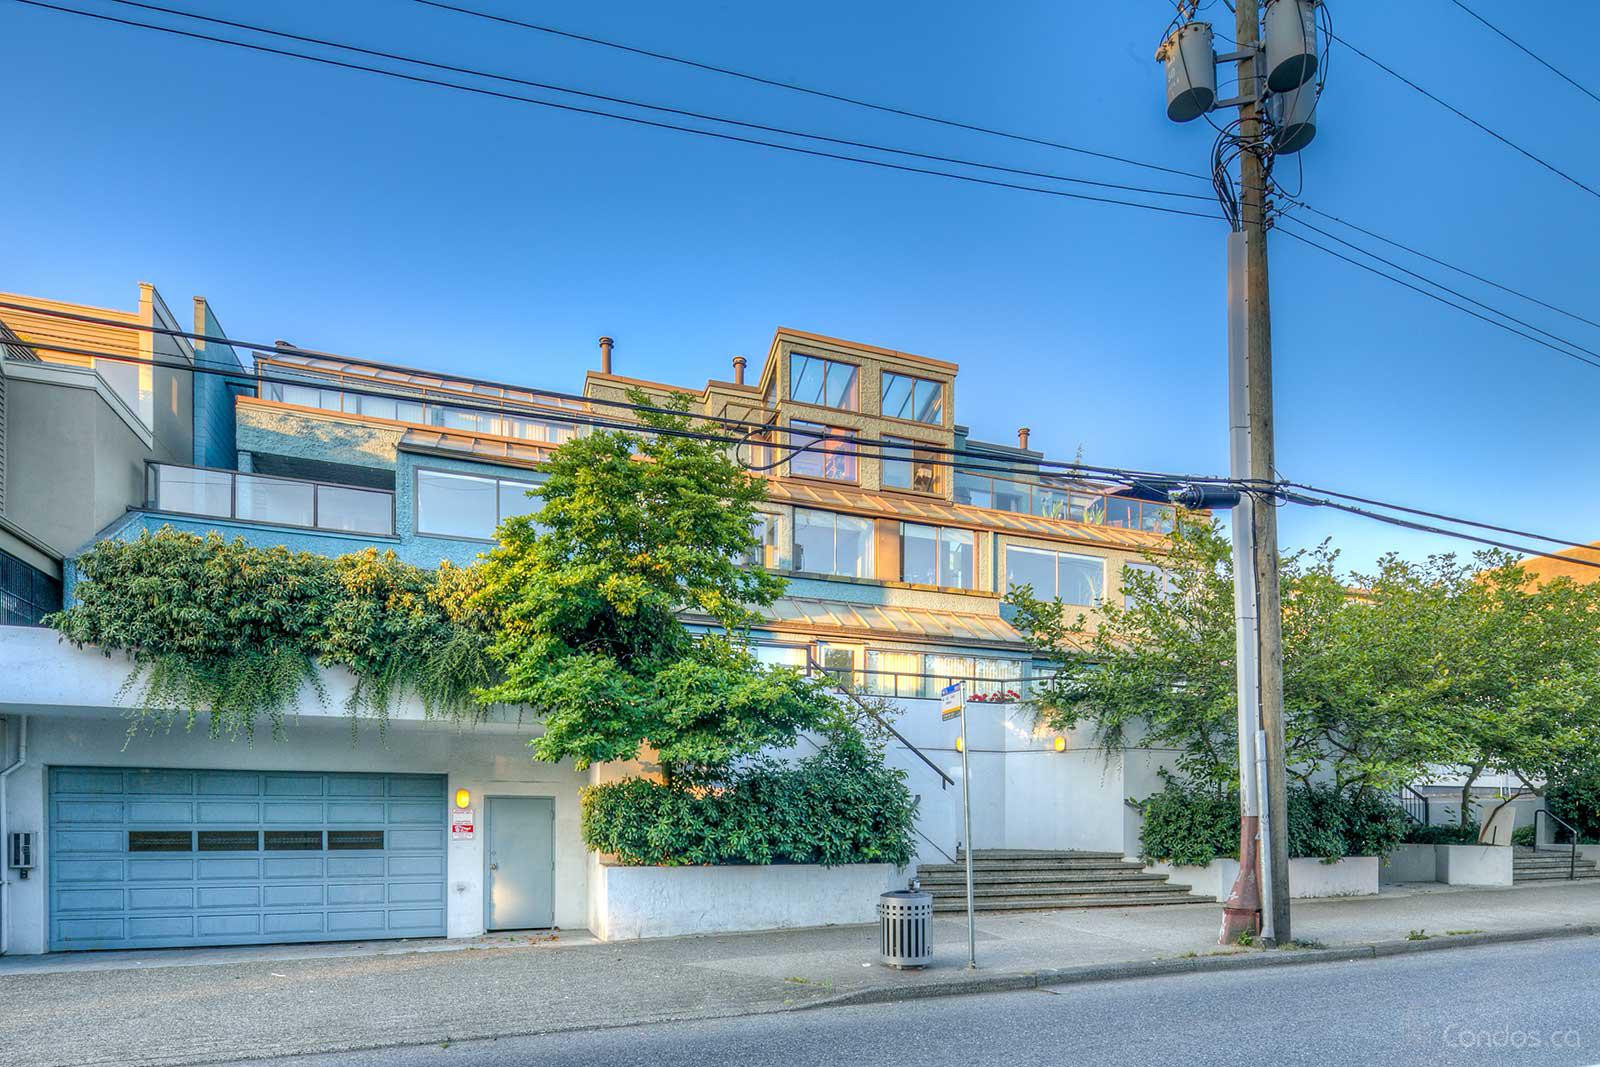 Alder Bay Place at 1220 W 6th Ave, Vancouver 1